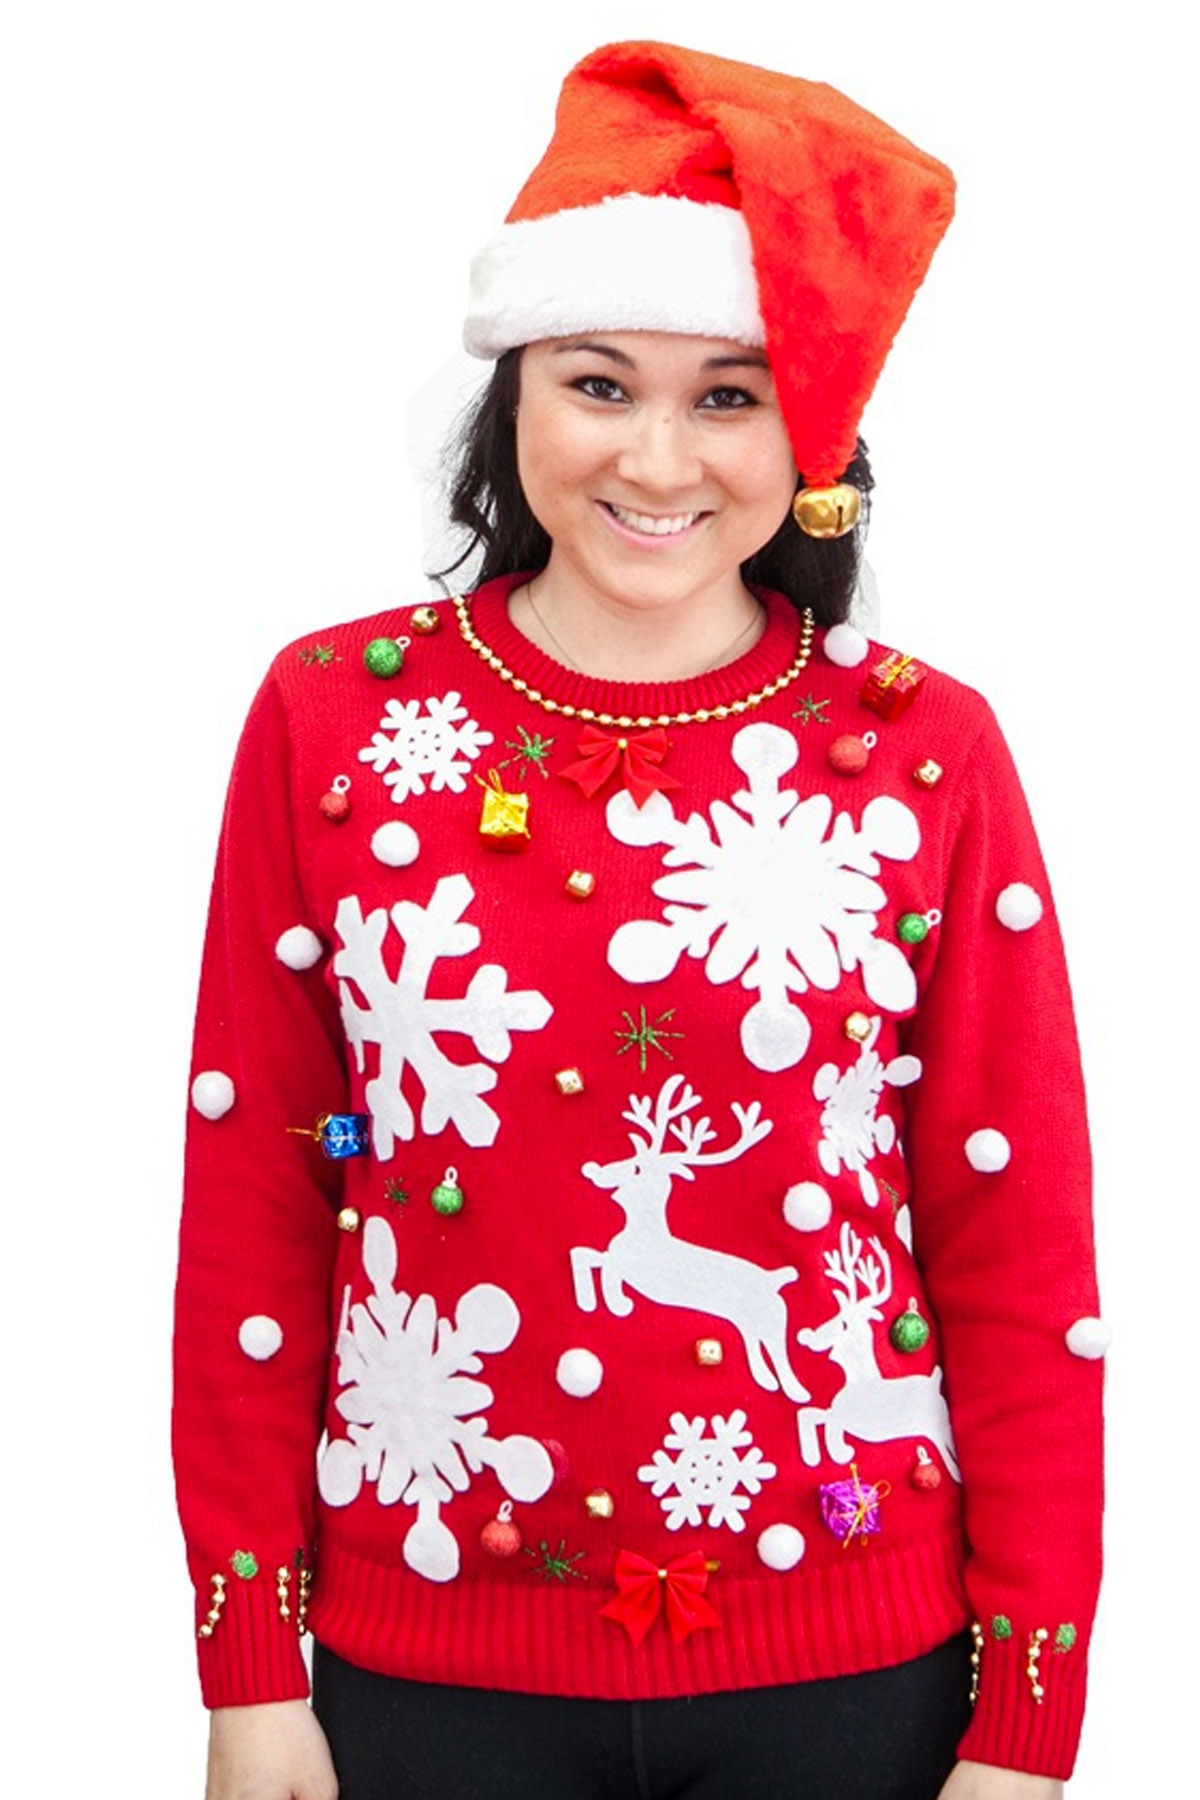 How to decorate an ugly christmas sweater